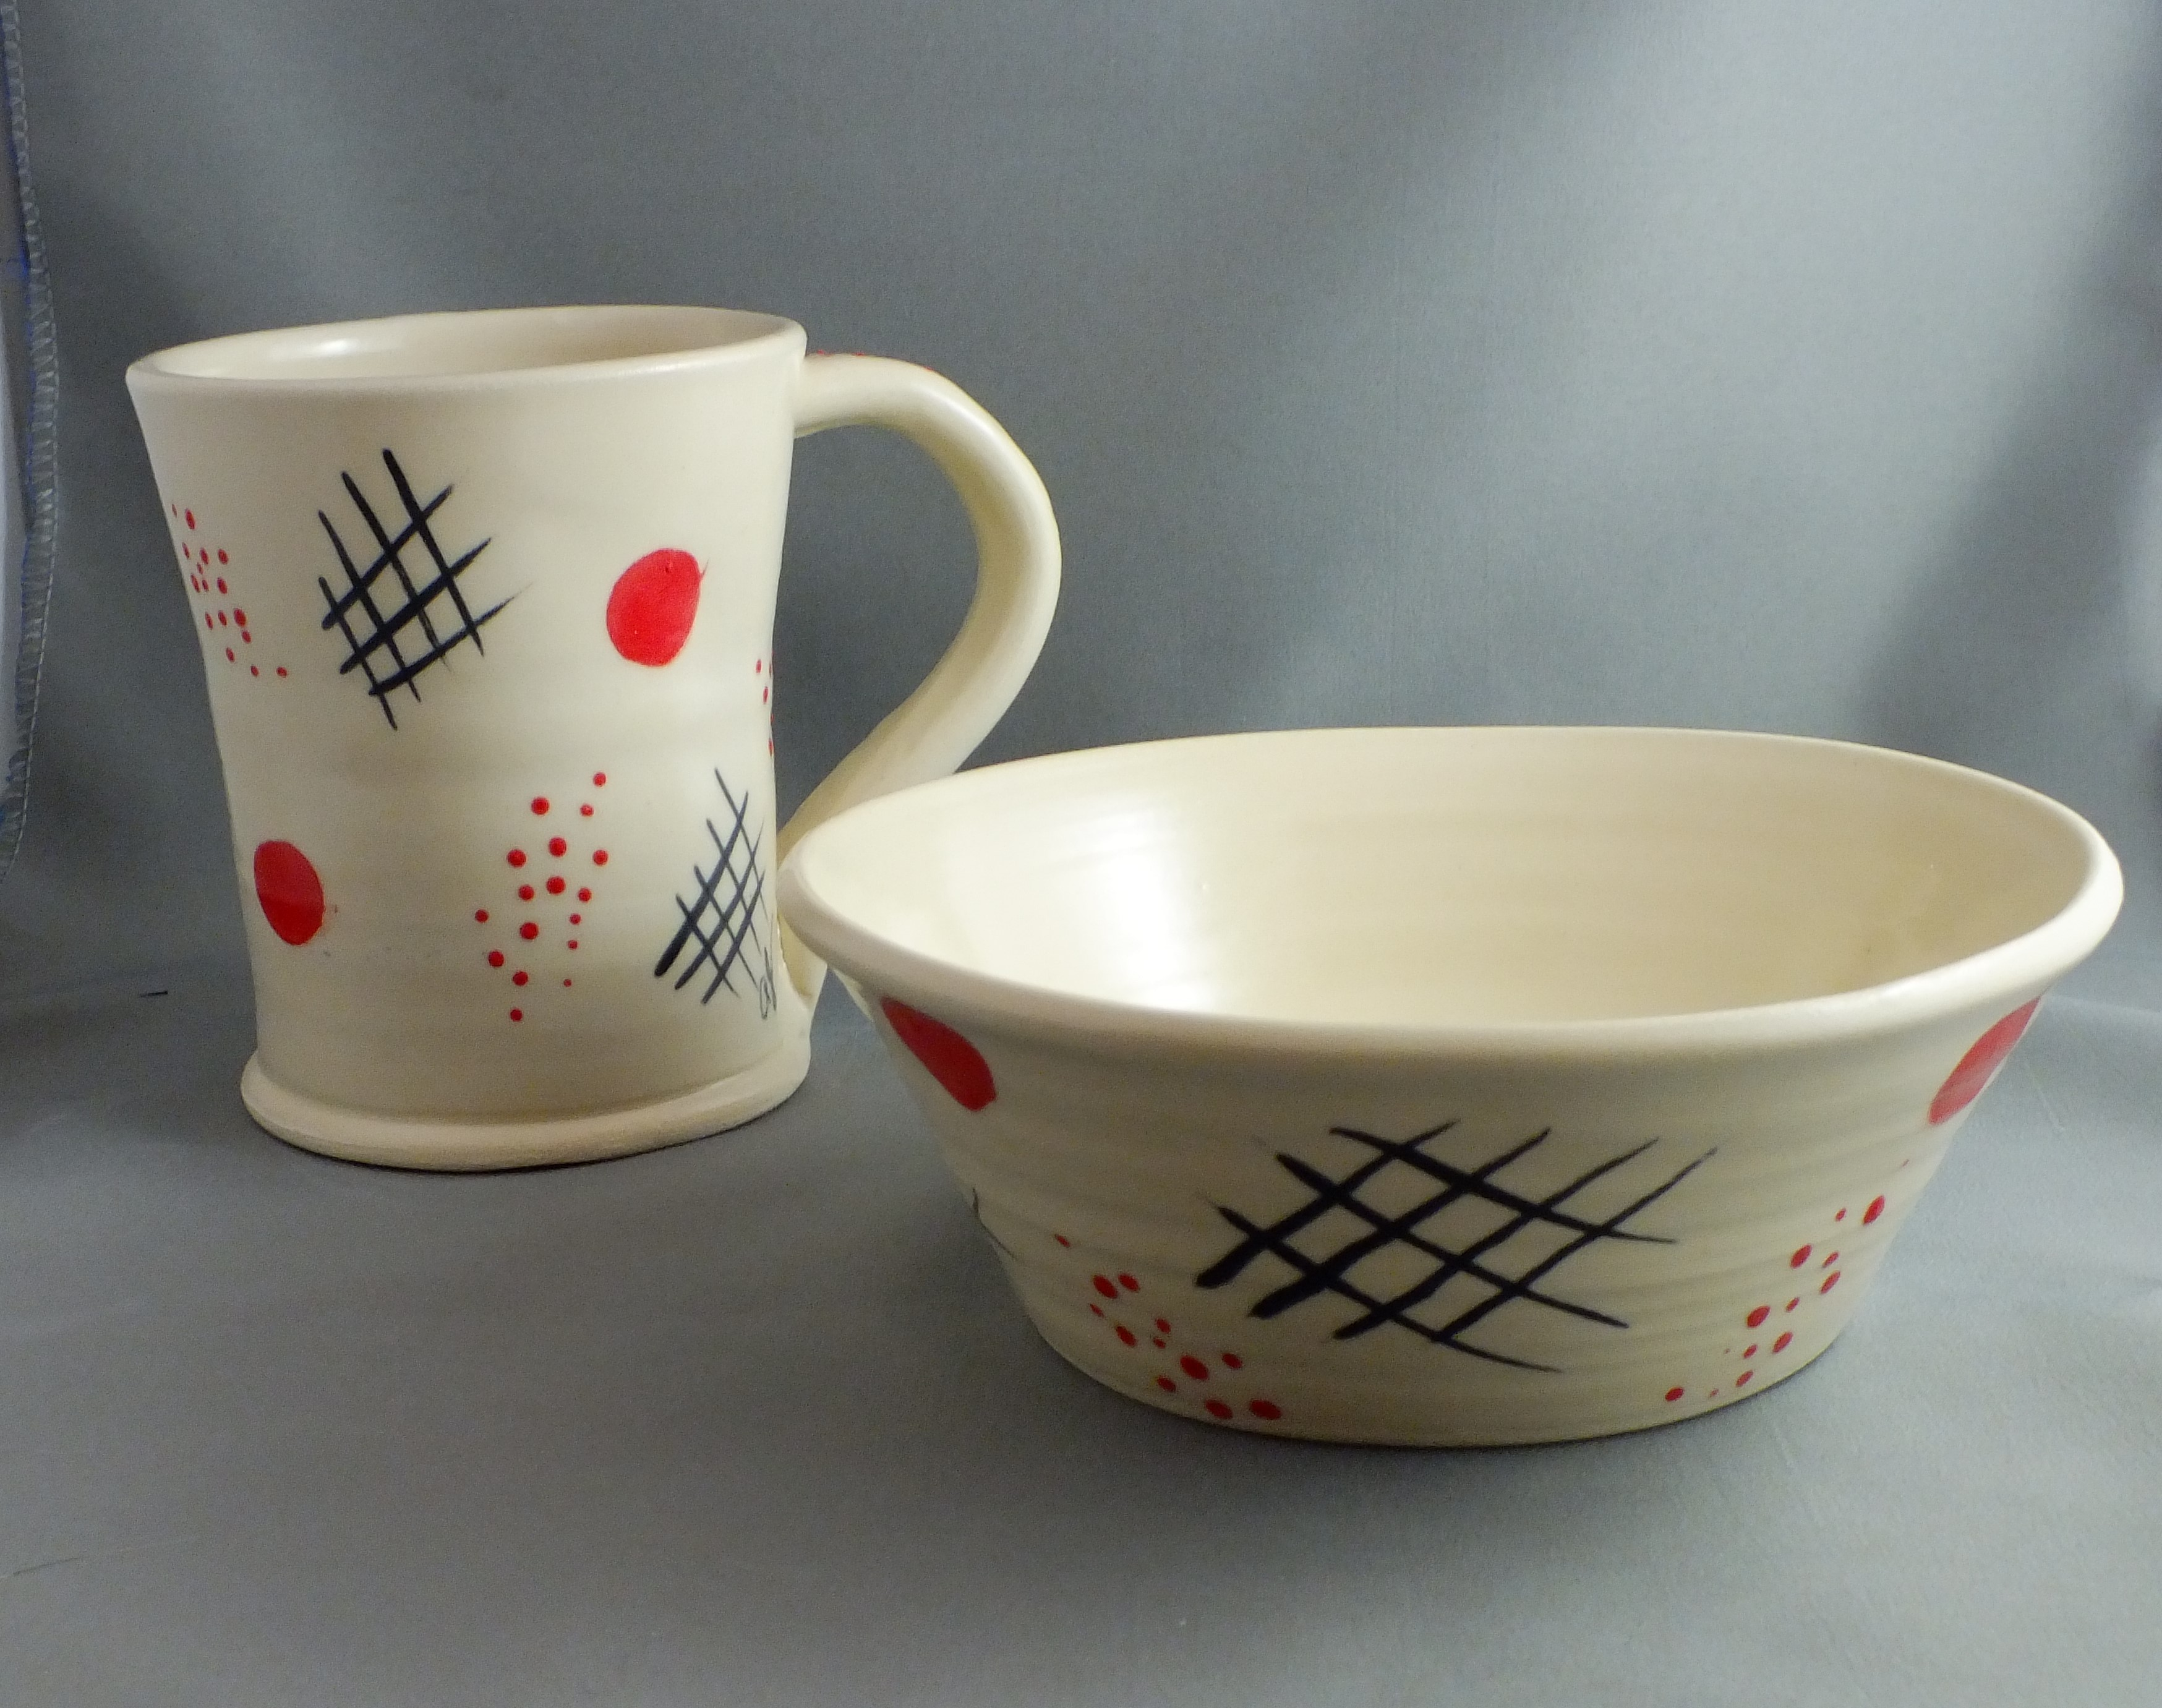 AJ mug and bowl set